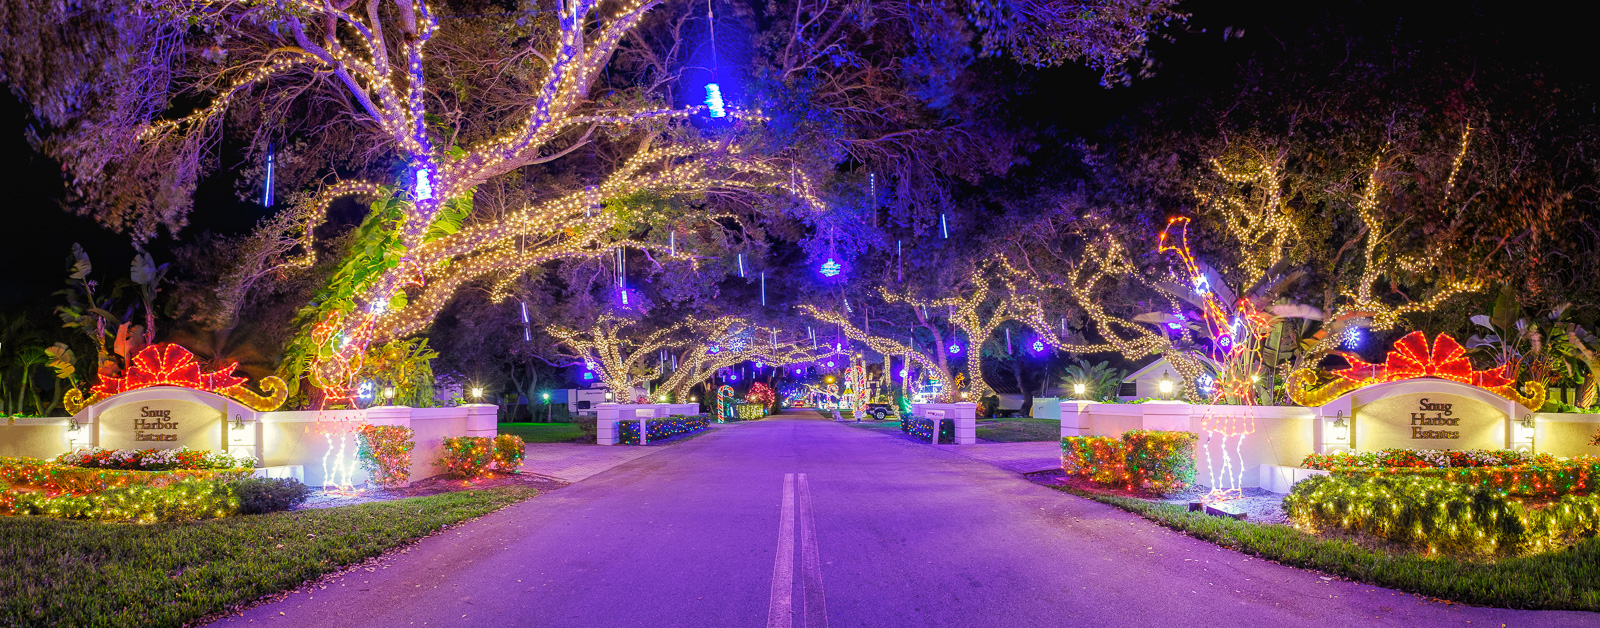 snug harbor christmas lights 2016